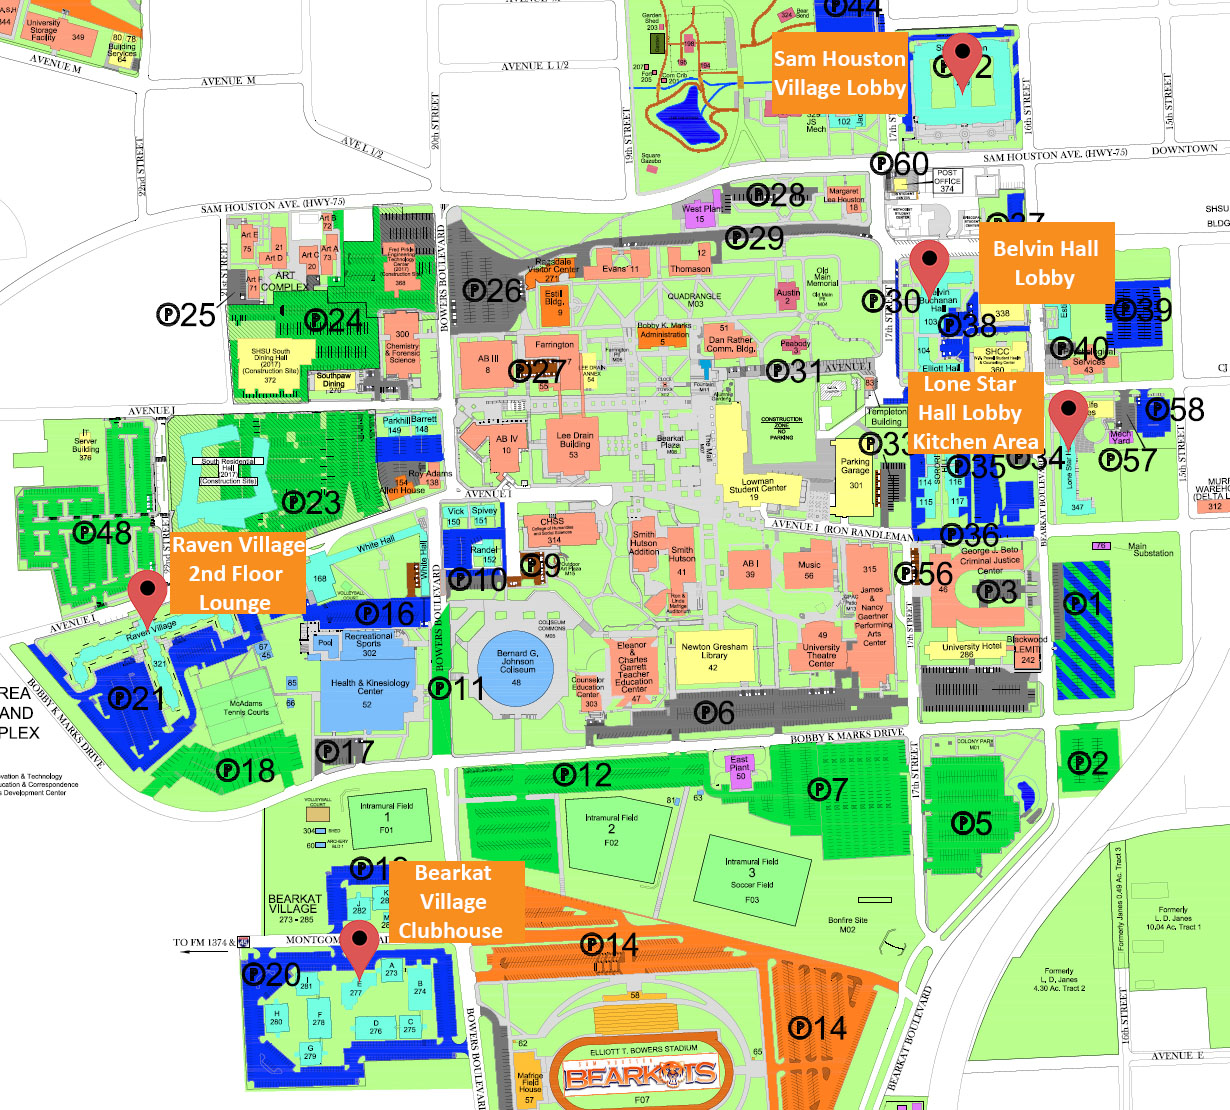 sam houston state university campus map Networking It Sam sam houston state university campus map